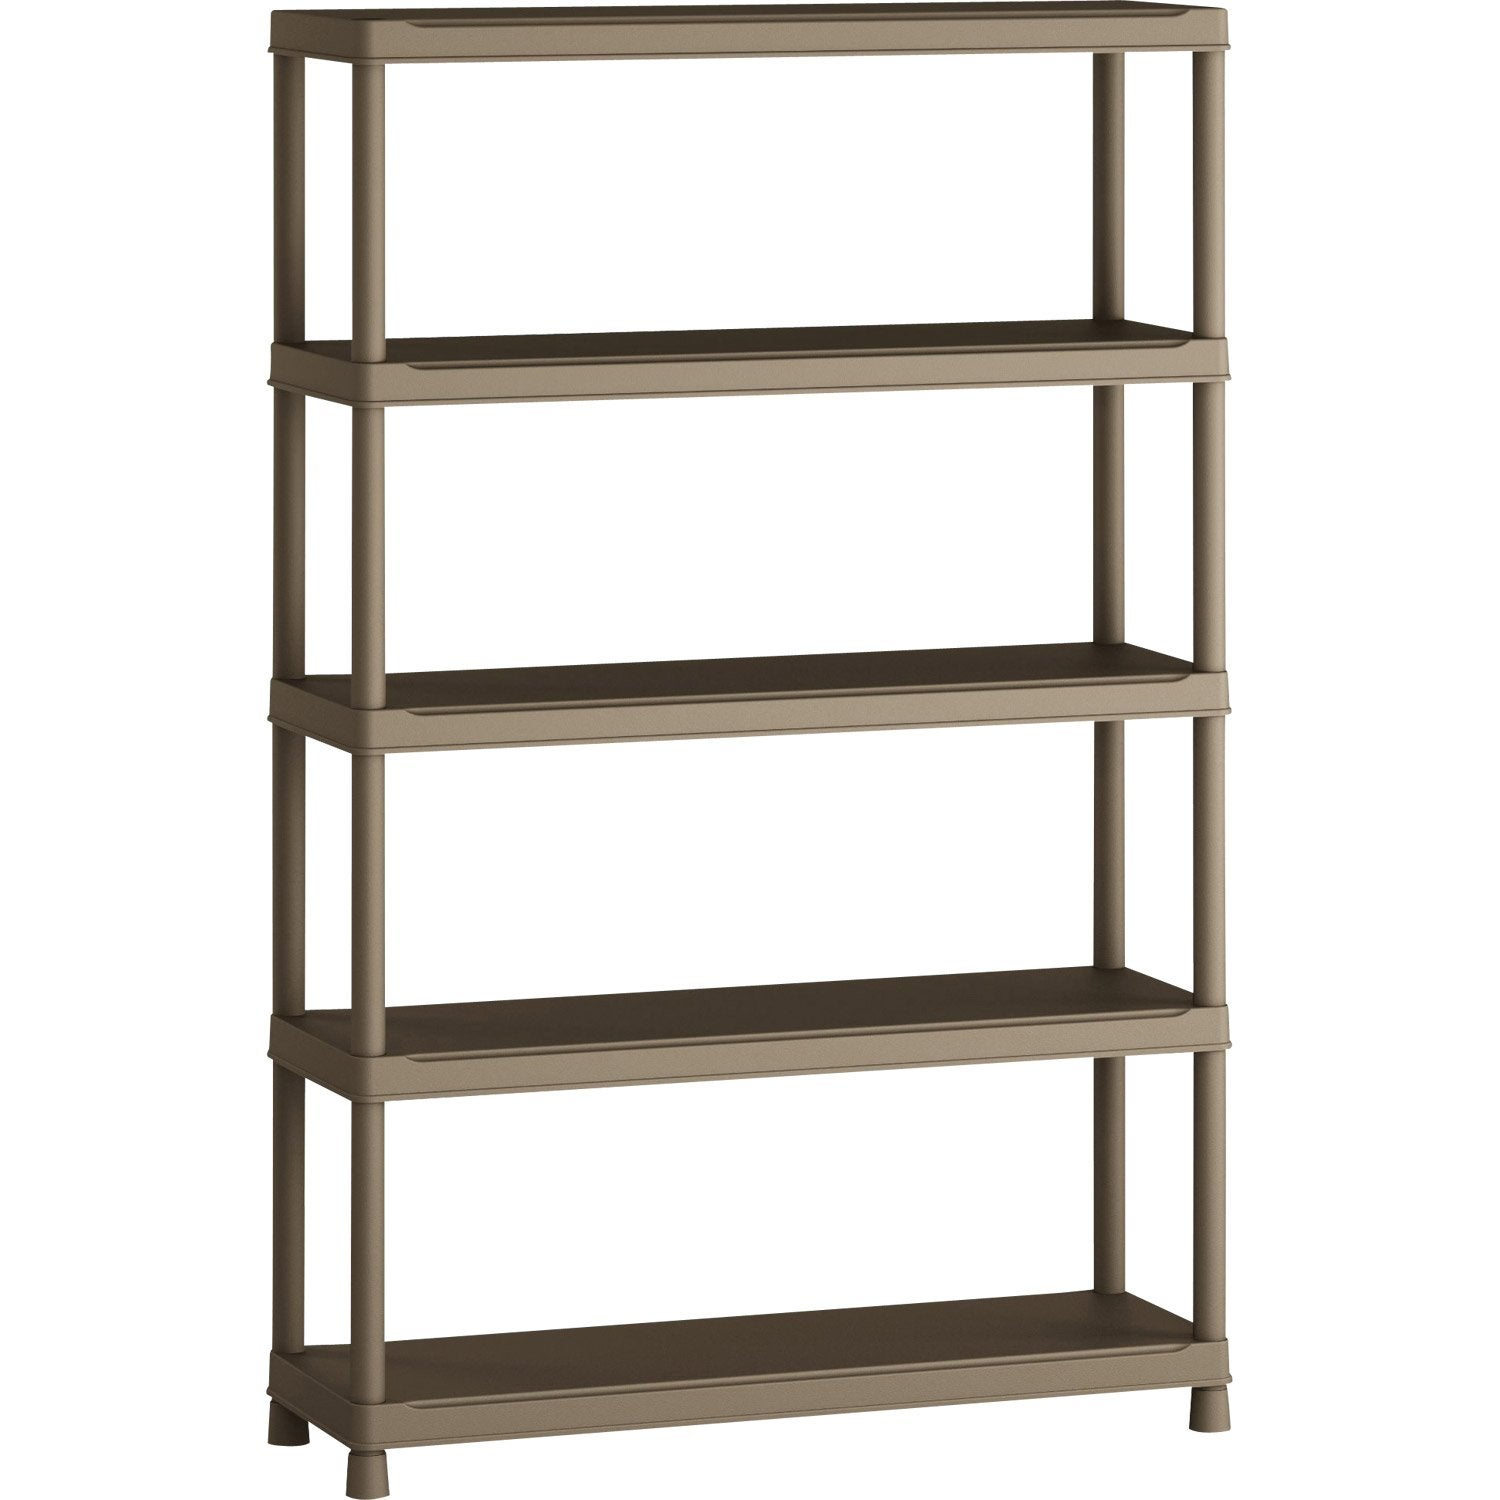 Etag re en r sine 5 tablettes spaceo h181xl120xp40 cm leroy merlin - Leroy merlin etagere bois ...